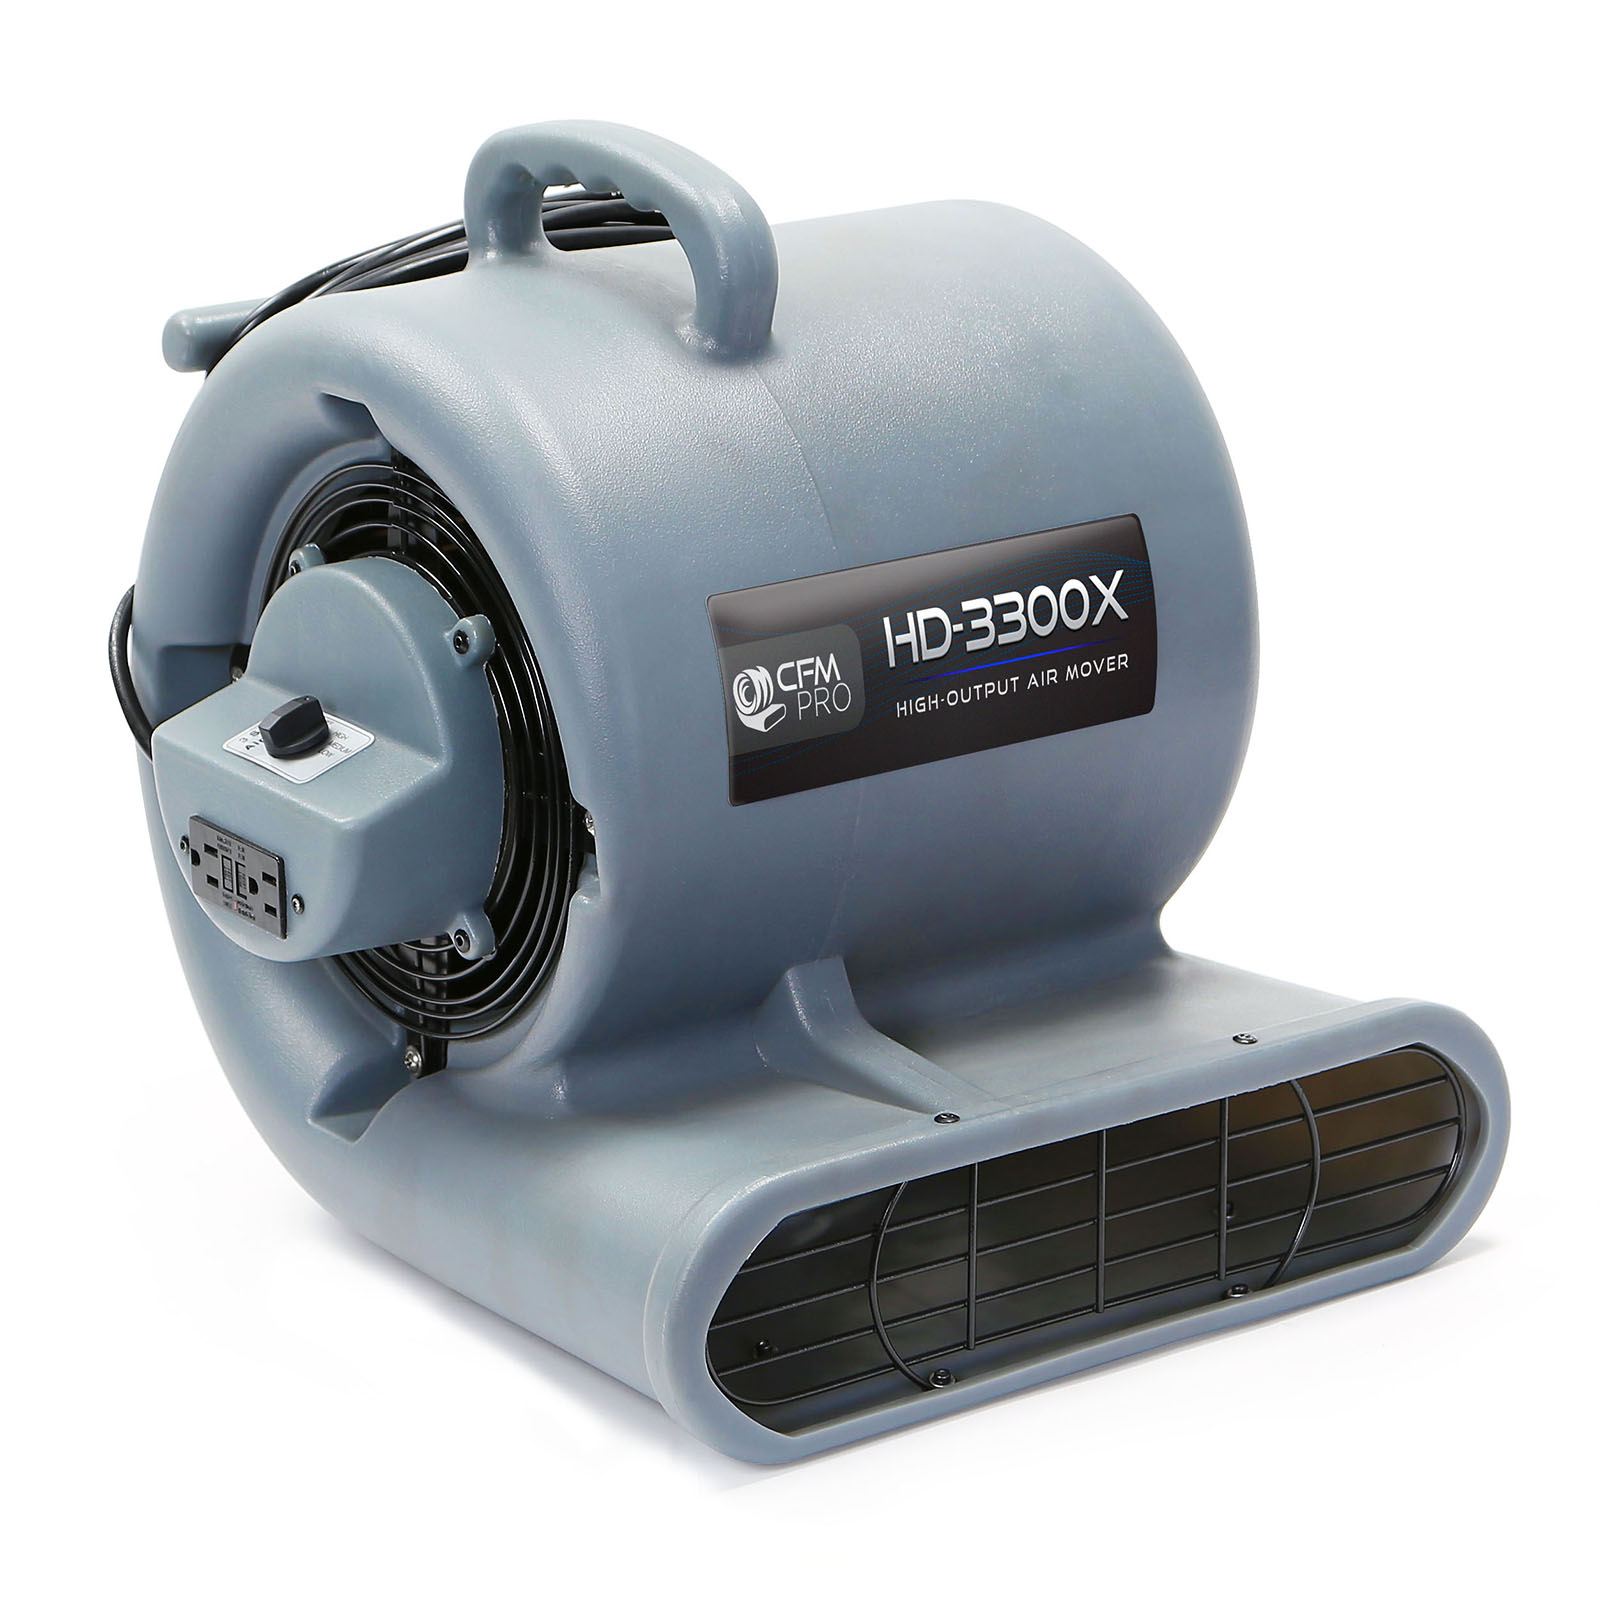 Floor Drying Fans : Carpet dryer air mover blower floor drying industrial fan